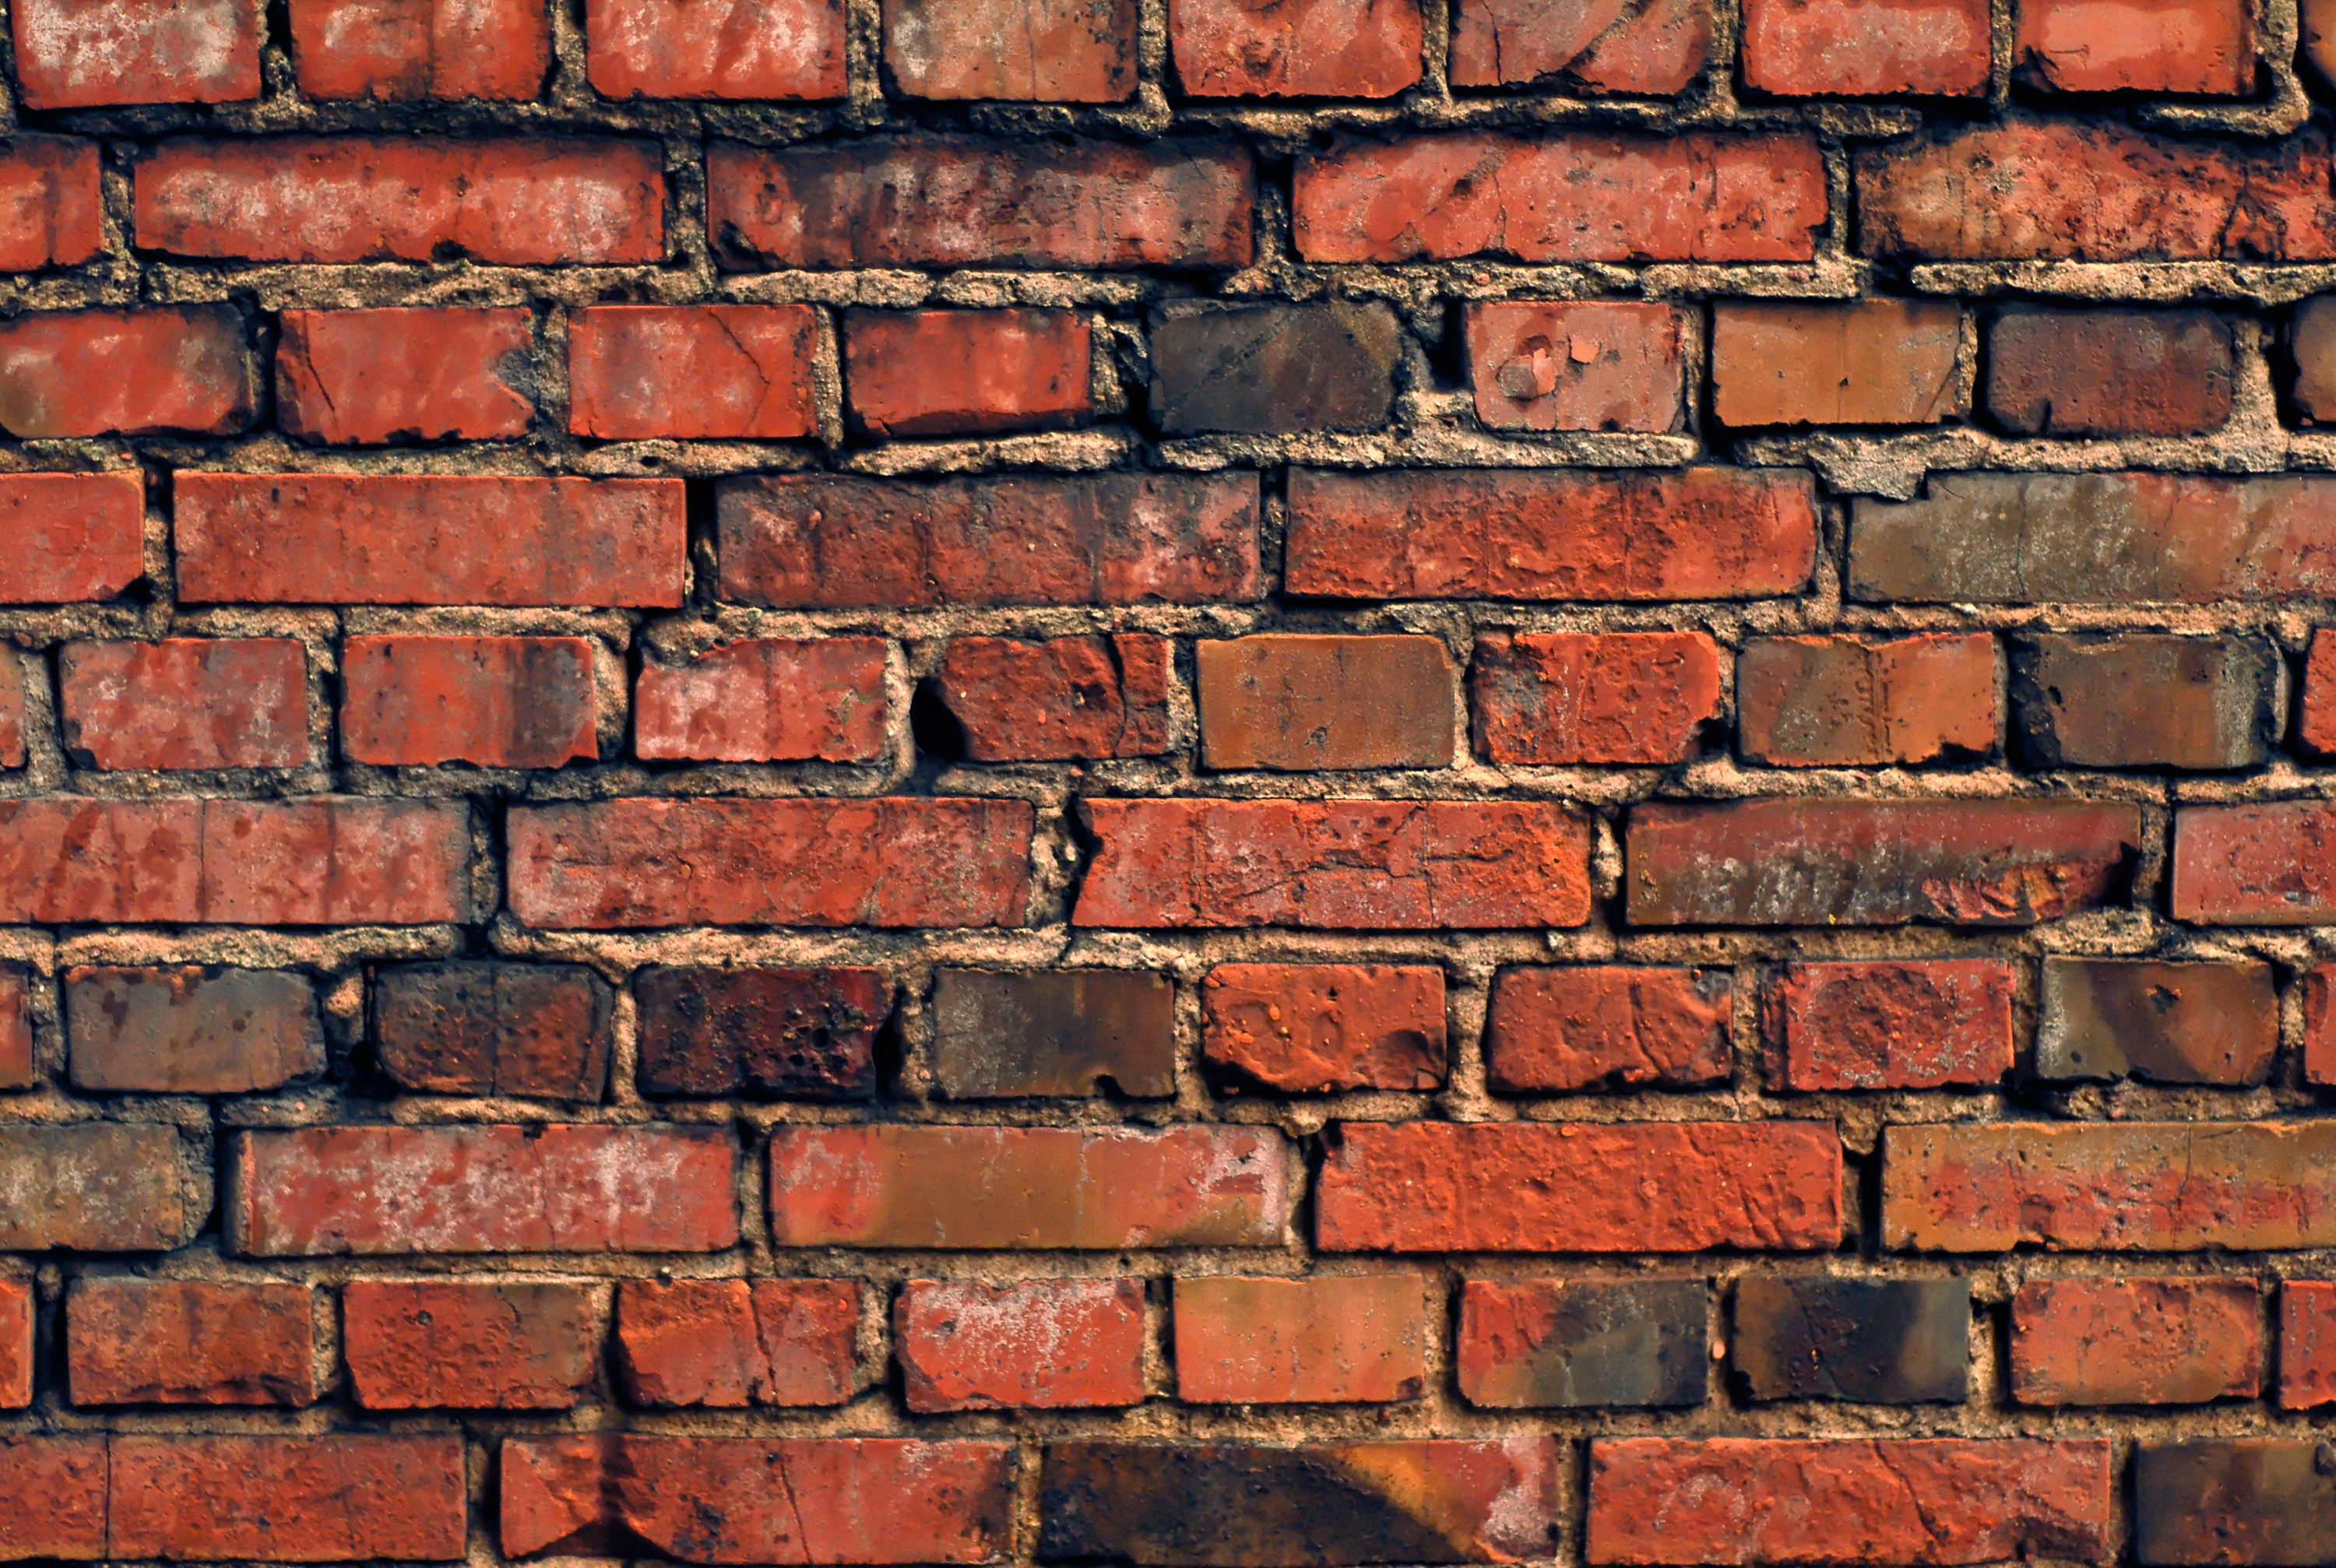 Brick Wallpapers High Quality Download Free HD Wallpapers Download Free Images Wallpaper [1000image.com]